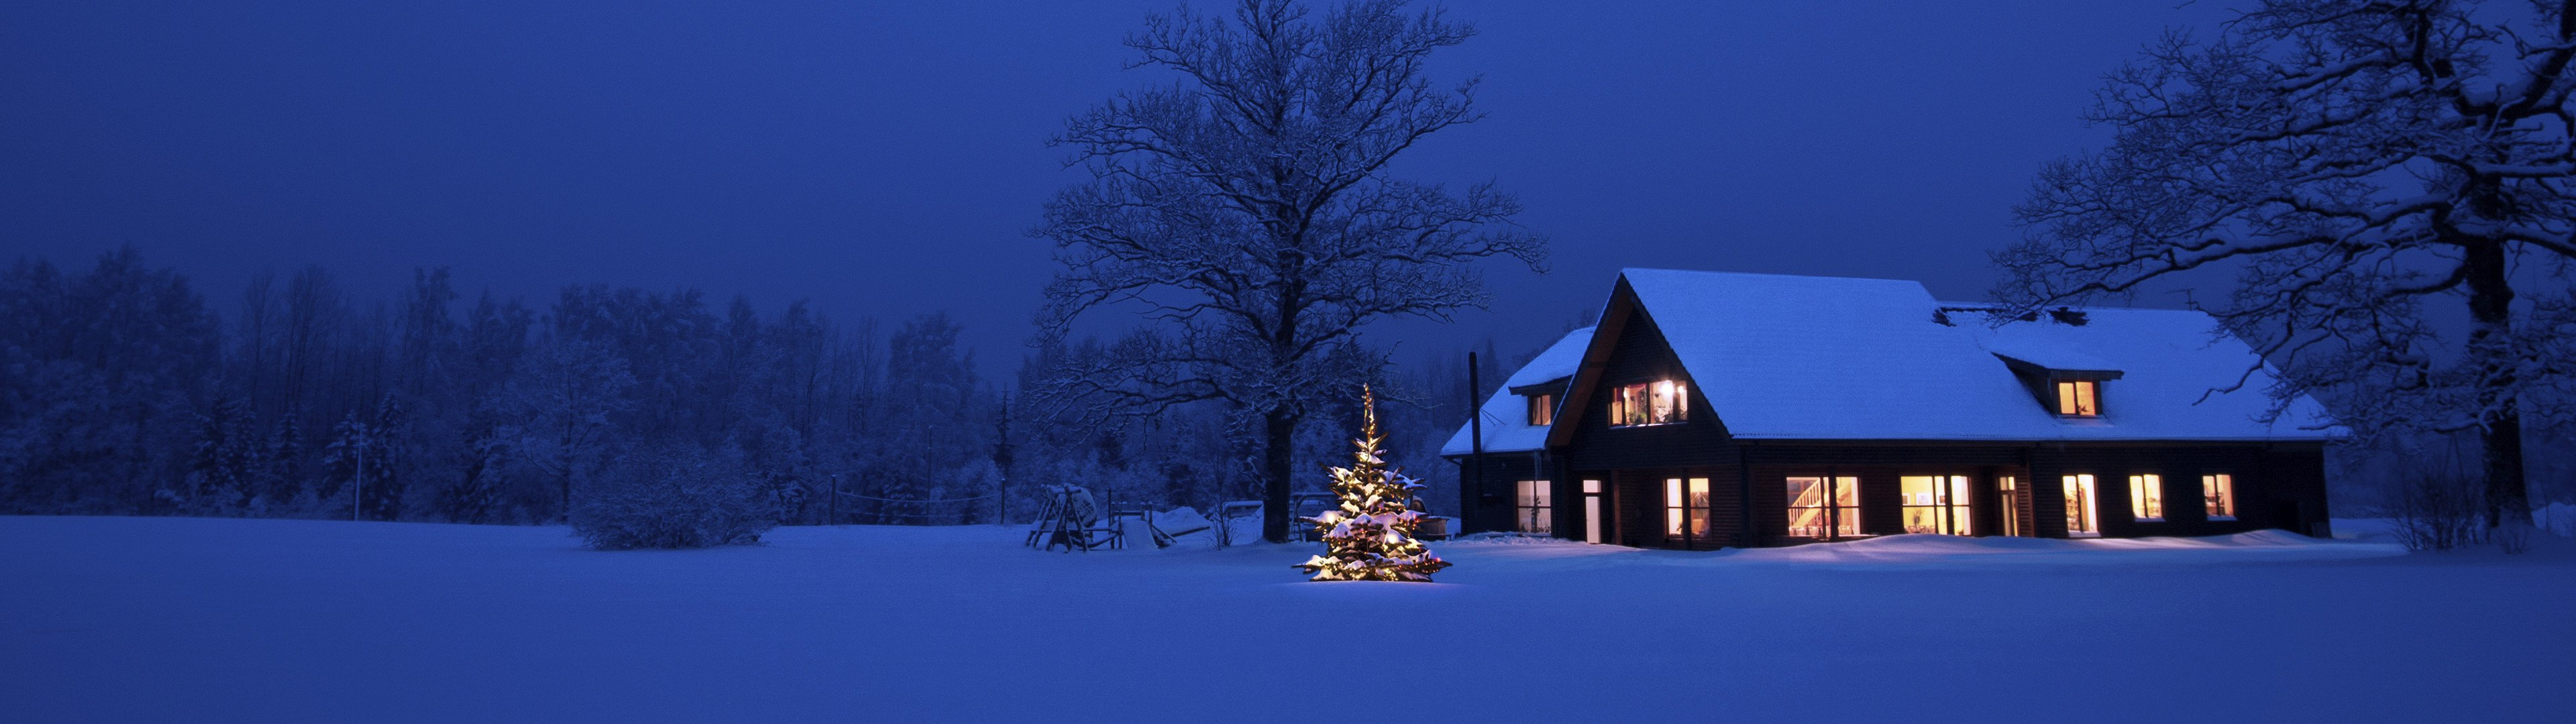 christmas tree and cozy house with snow outside for dual 1920x1080 wallpaper